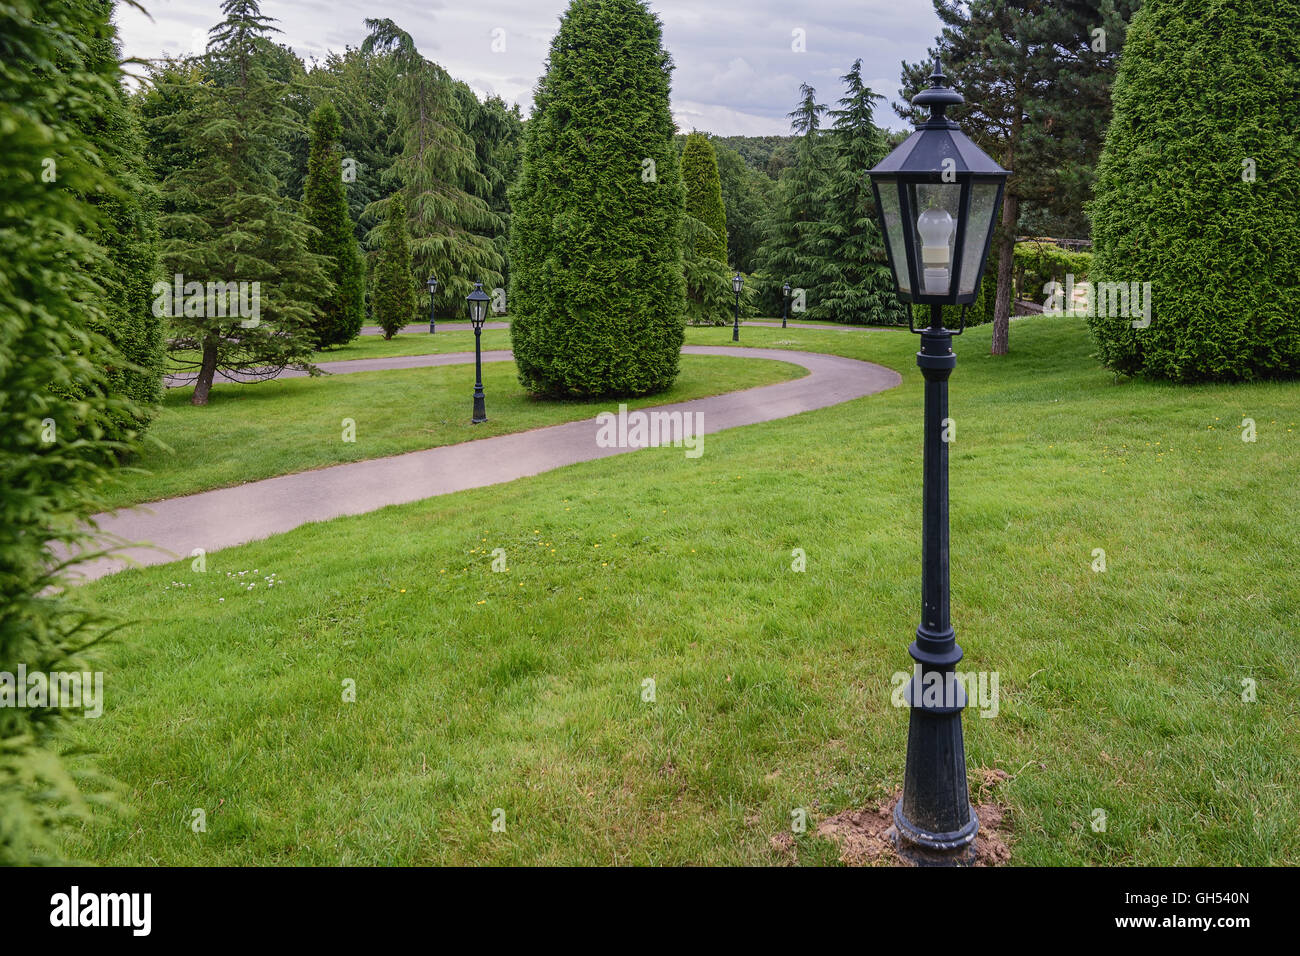 Winding path through the park with conifers with lanterns. - Stock Image